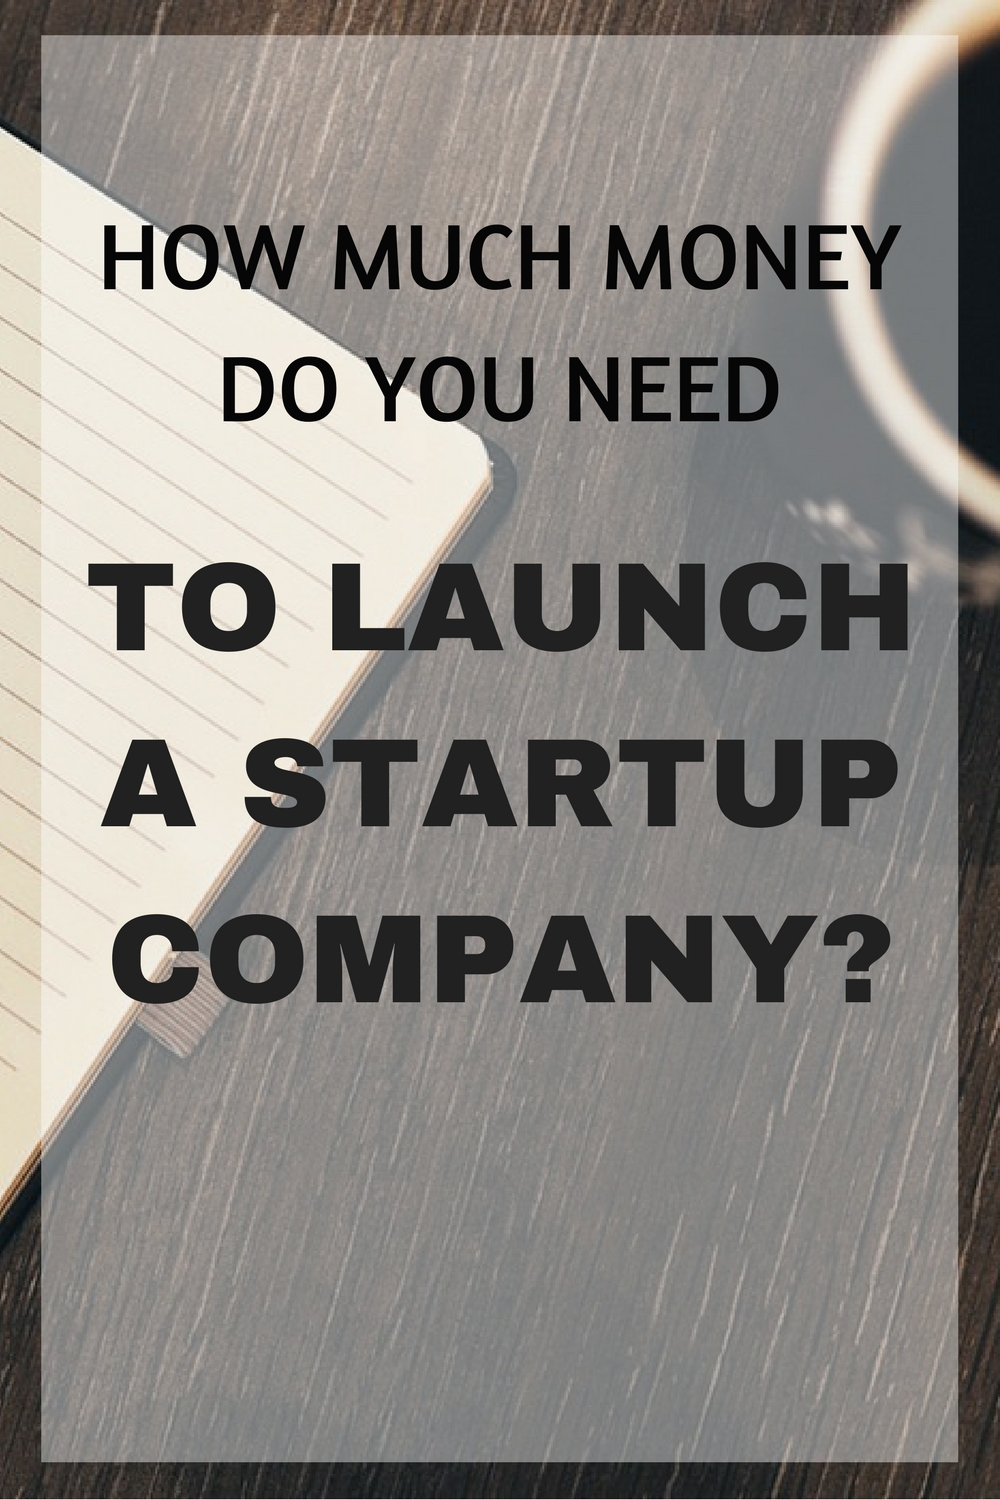 how much money need launch startup?